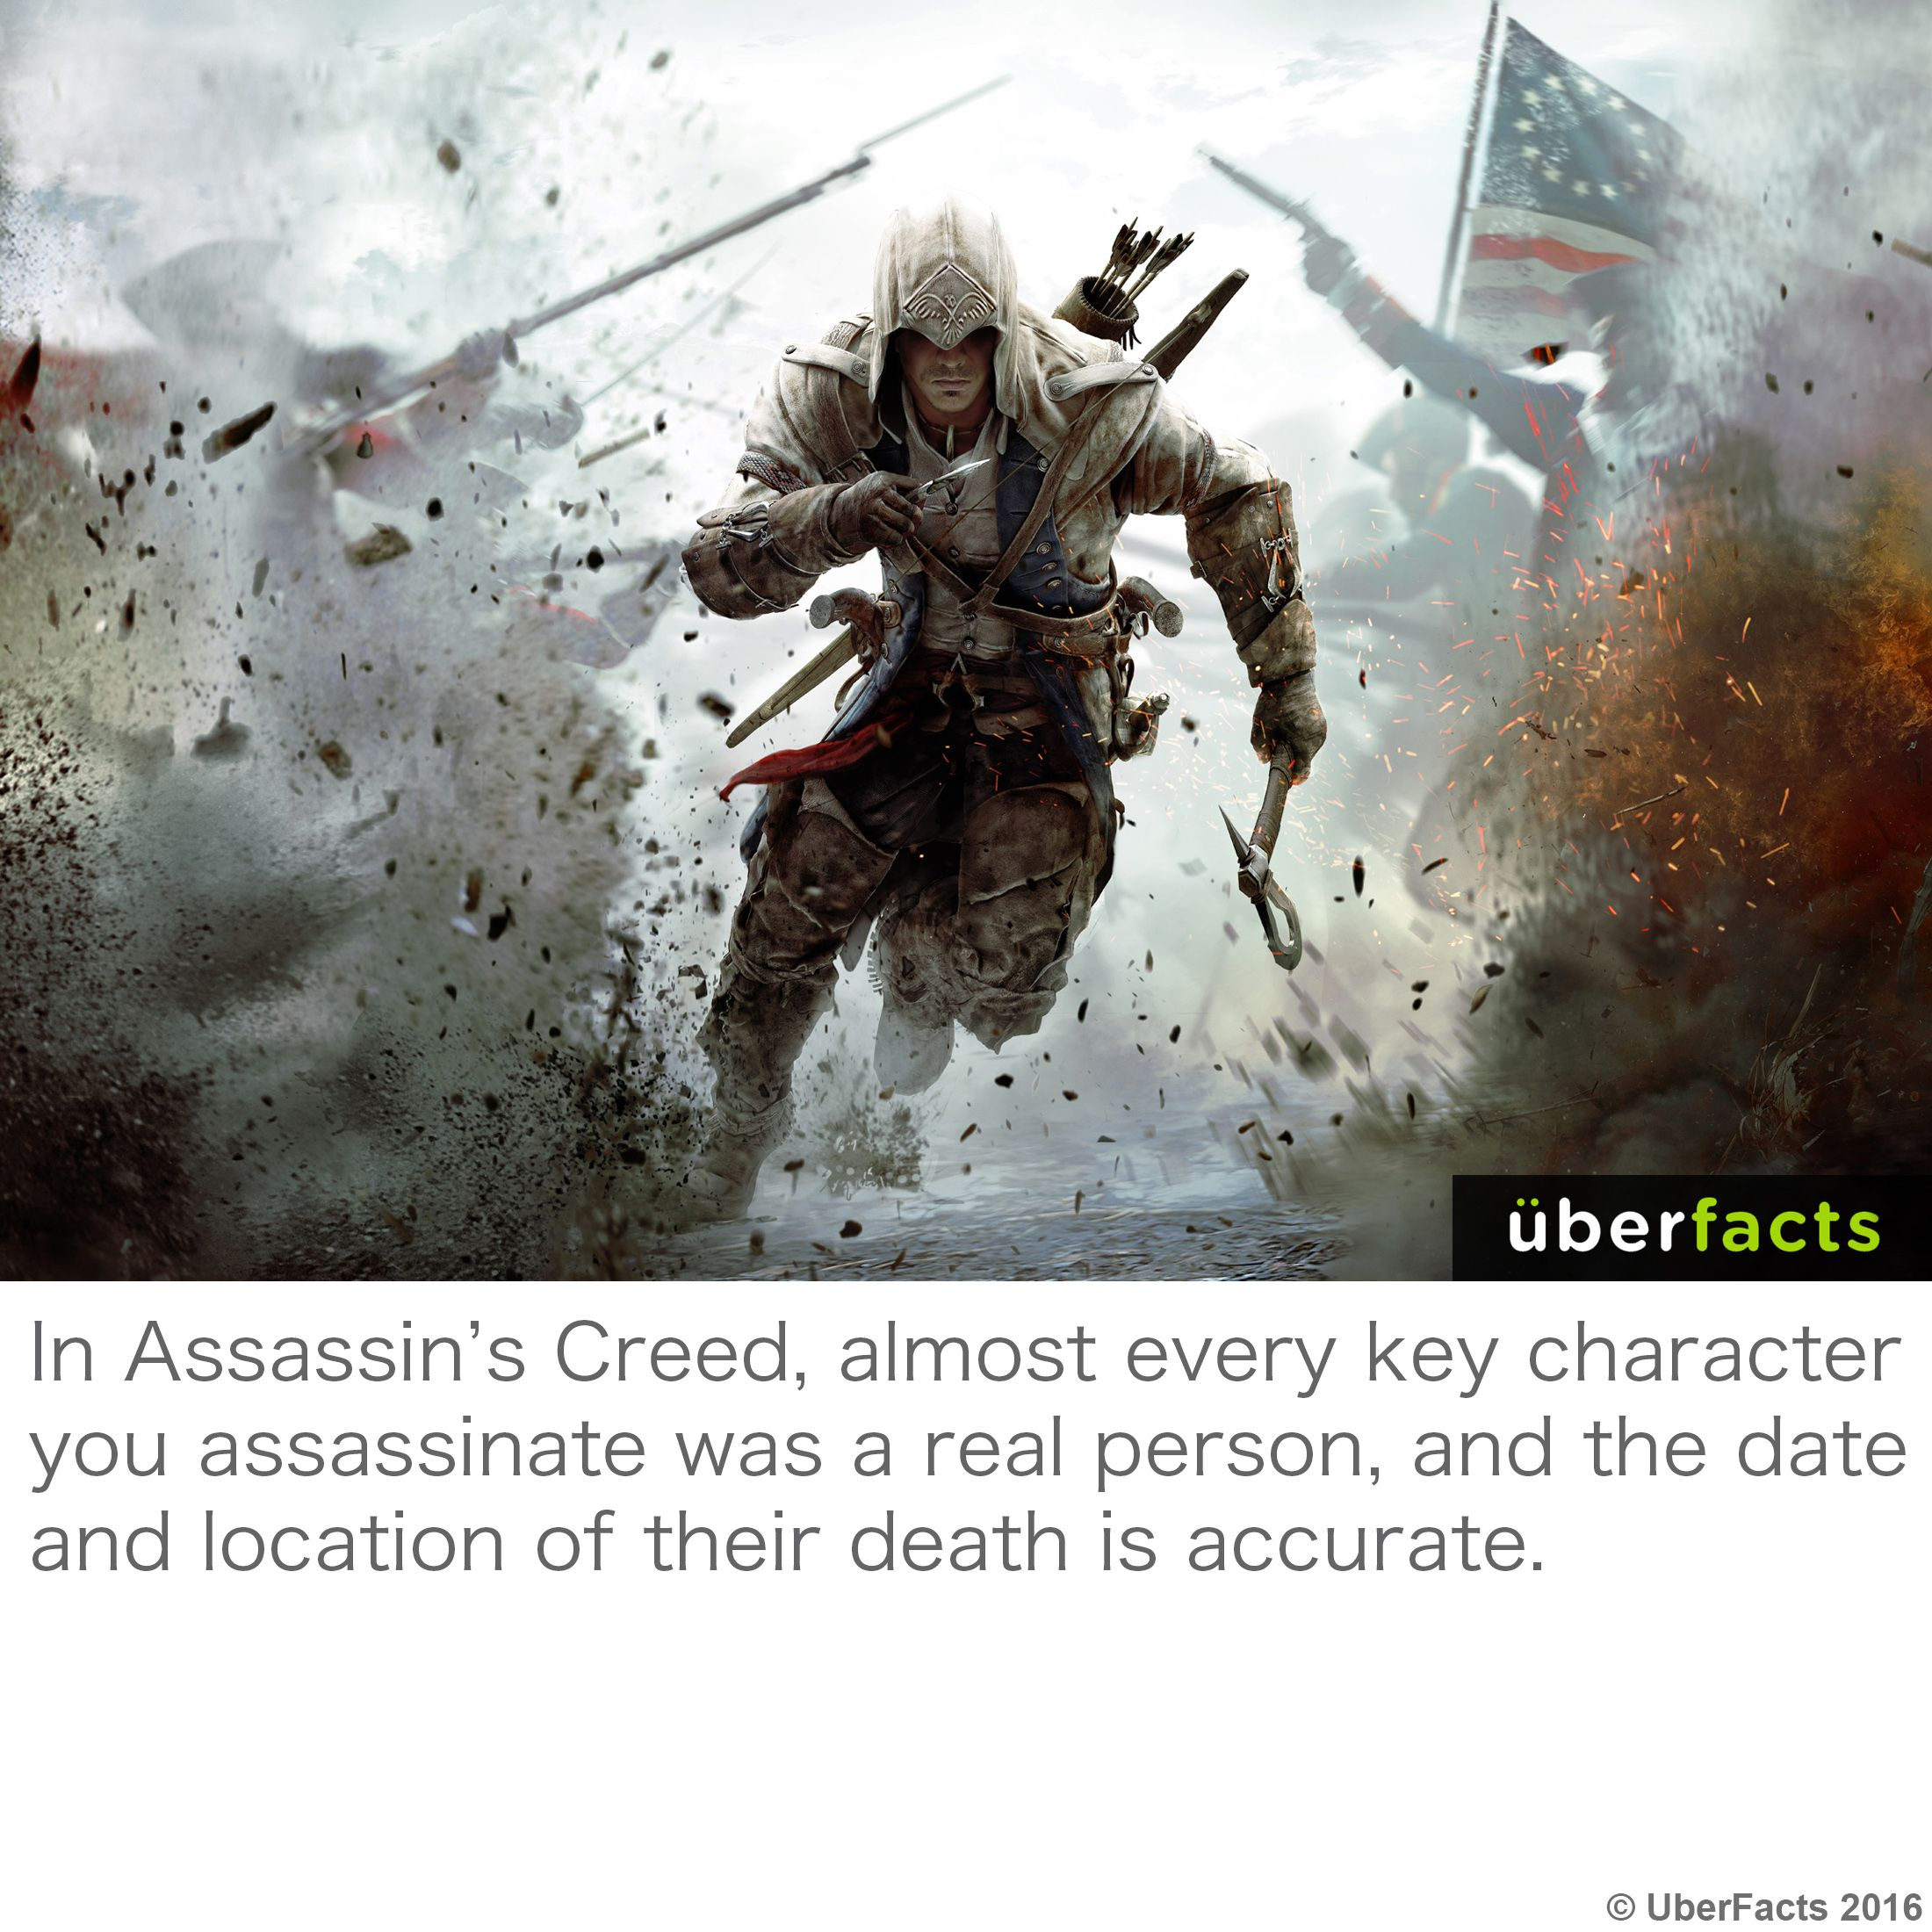 1920x1080 NK642 Video Game Wallpapers Awesome Backgrounds Pretty Assassins Creed 3VideogamesHd WallpaperConcept